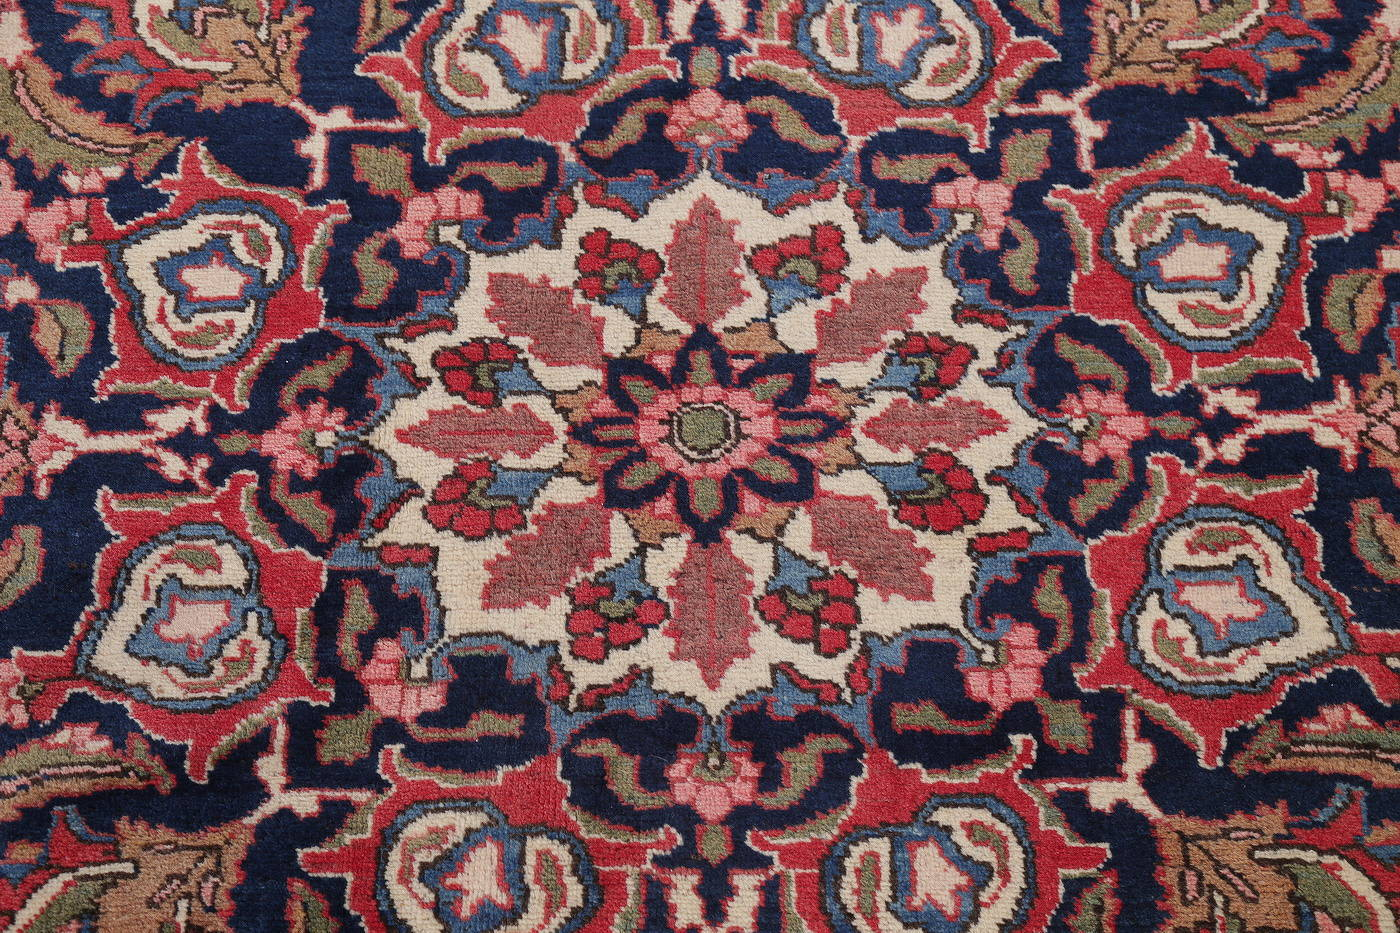 Antique Vegetable Dye Bakhtiari Persian Area Rug 12x14 image 7